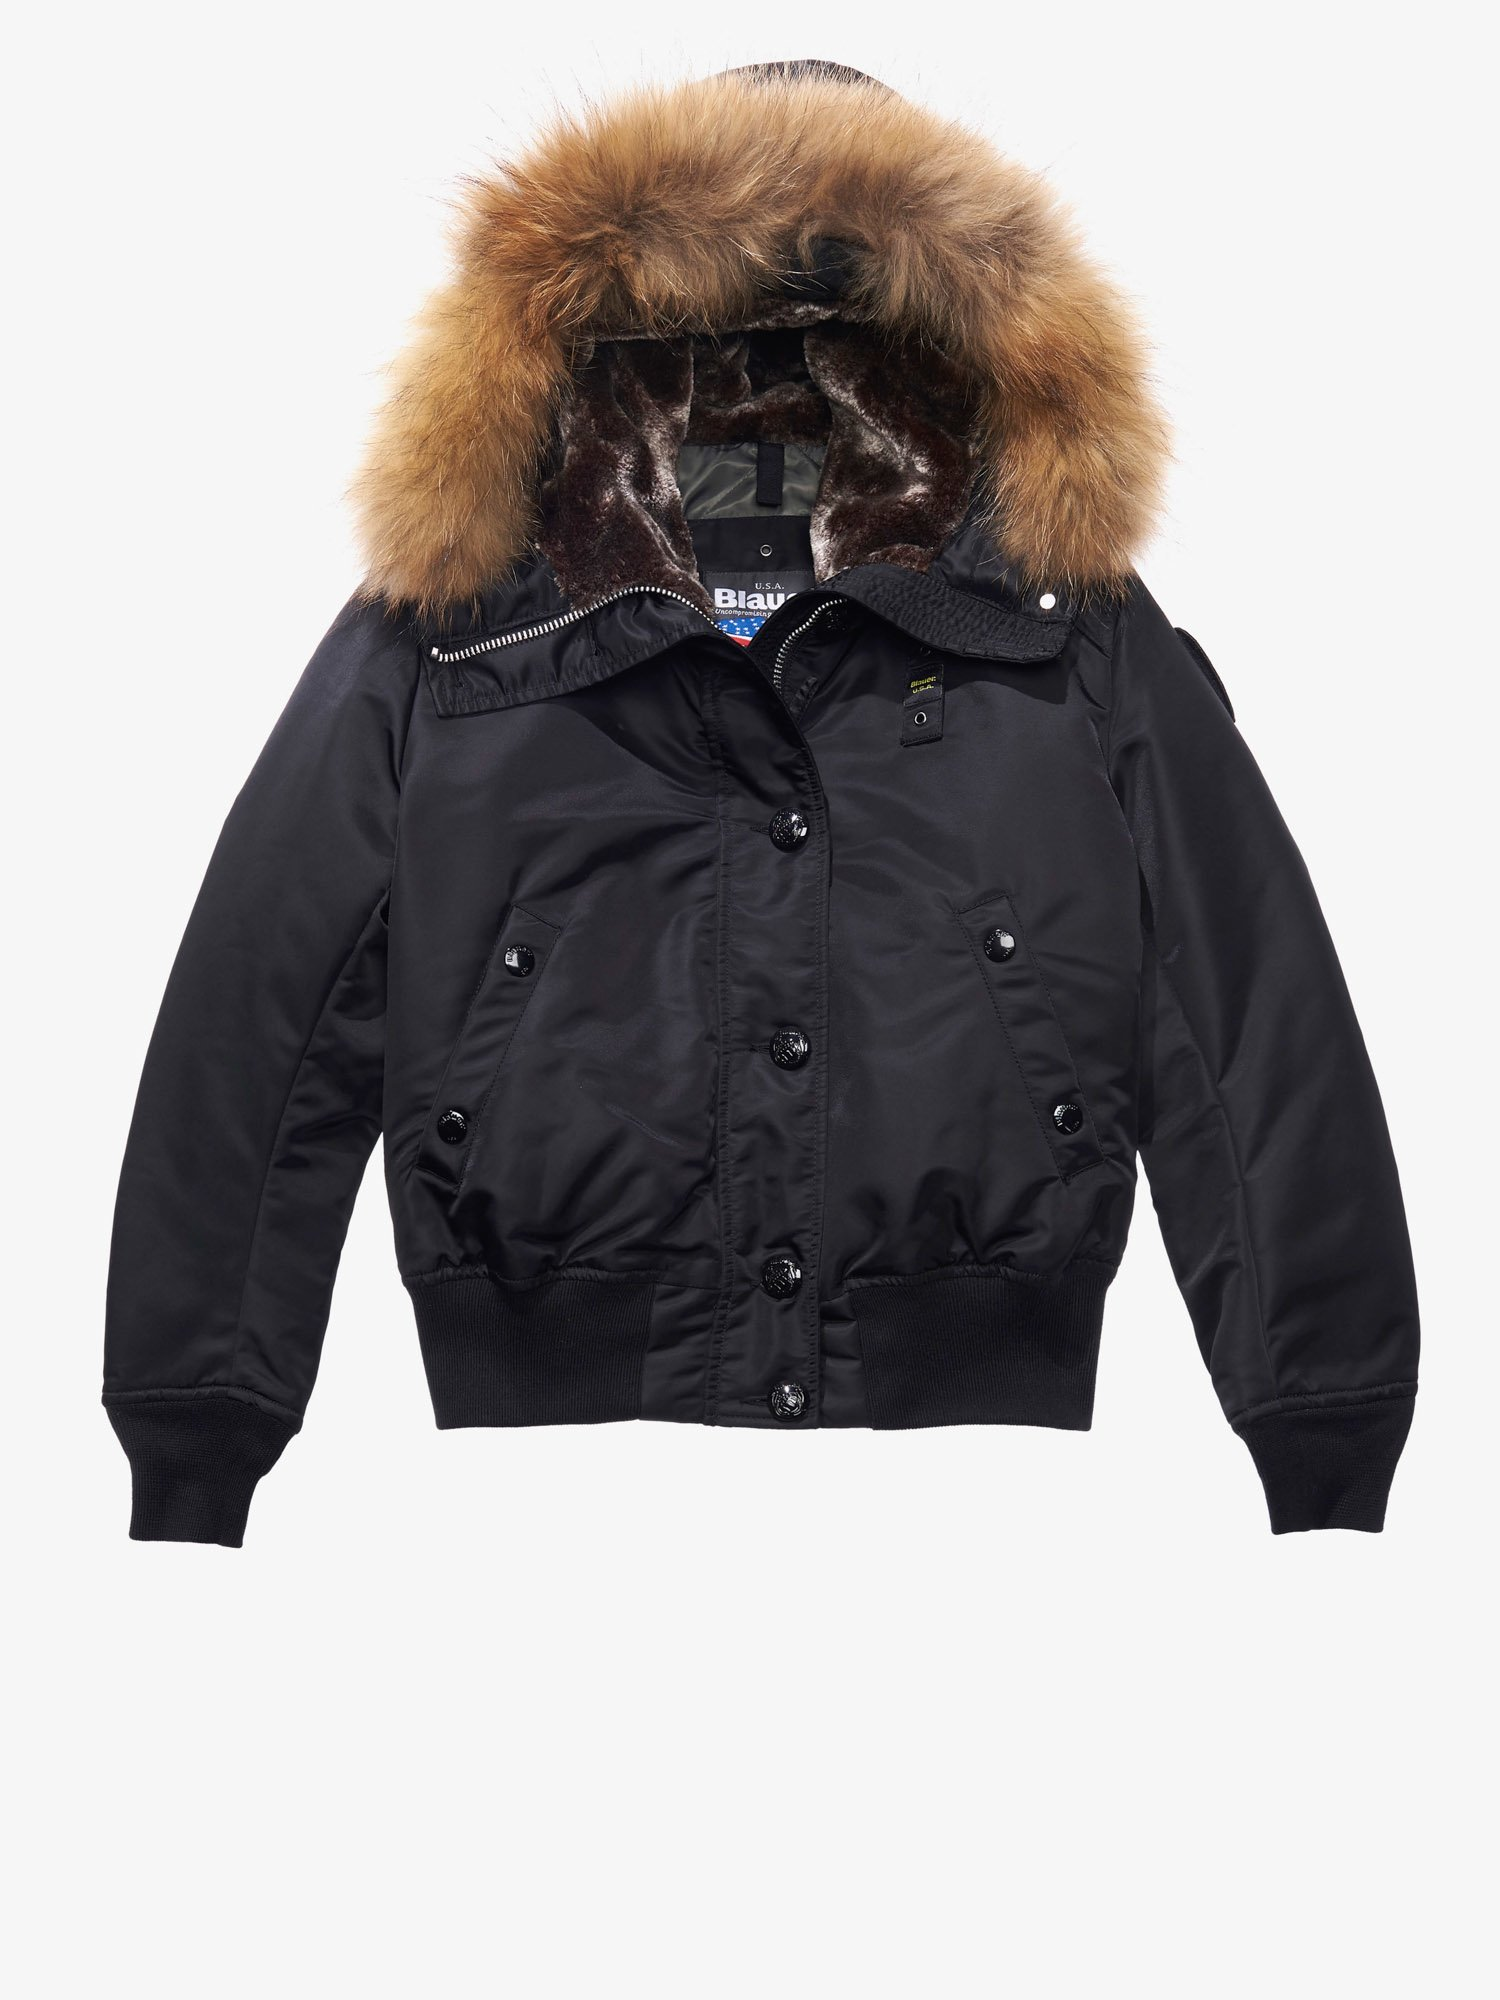 rivenditore all'ingrosso 0ccb9 d249a Irene Aviator Bomber Jacket With Fur Hood | Blauer®